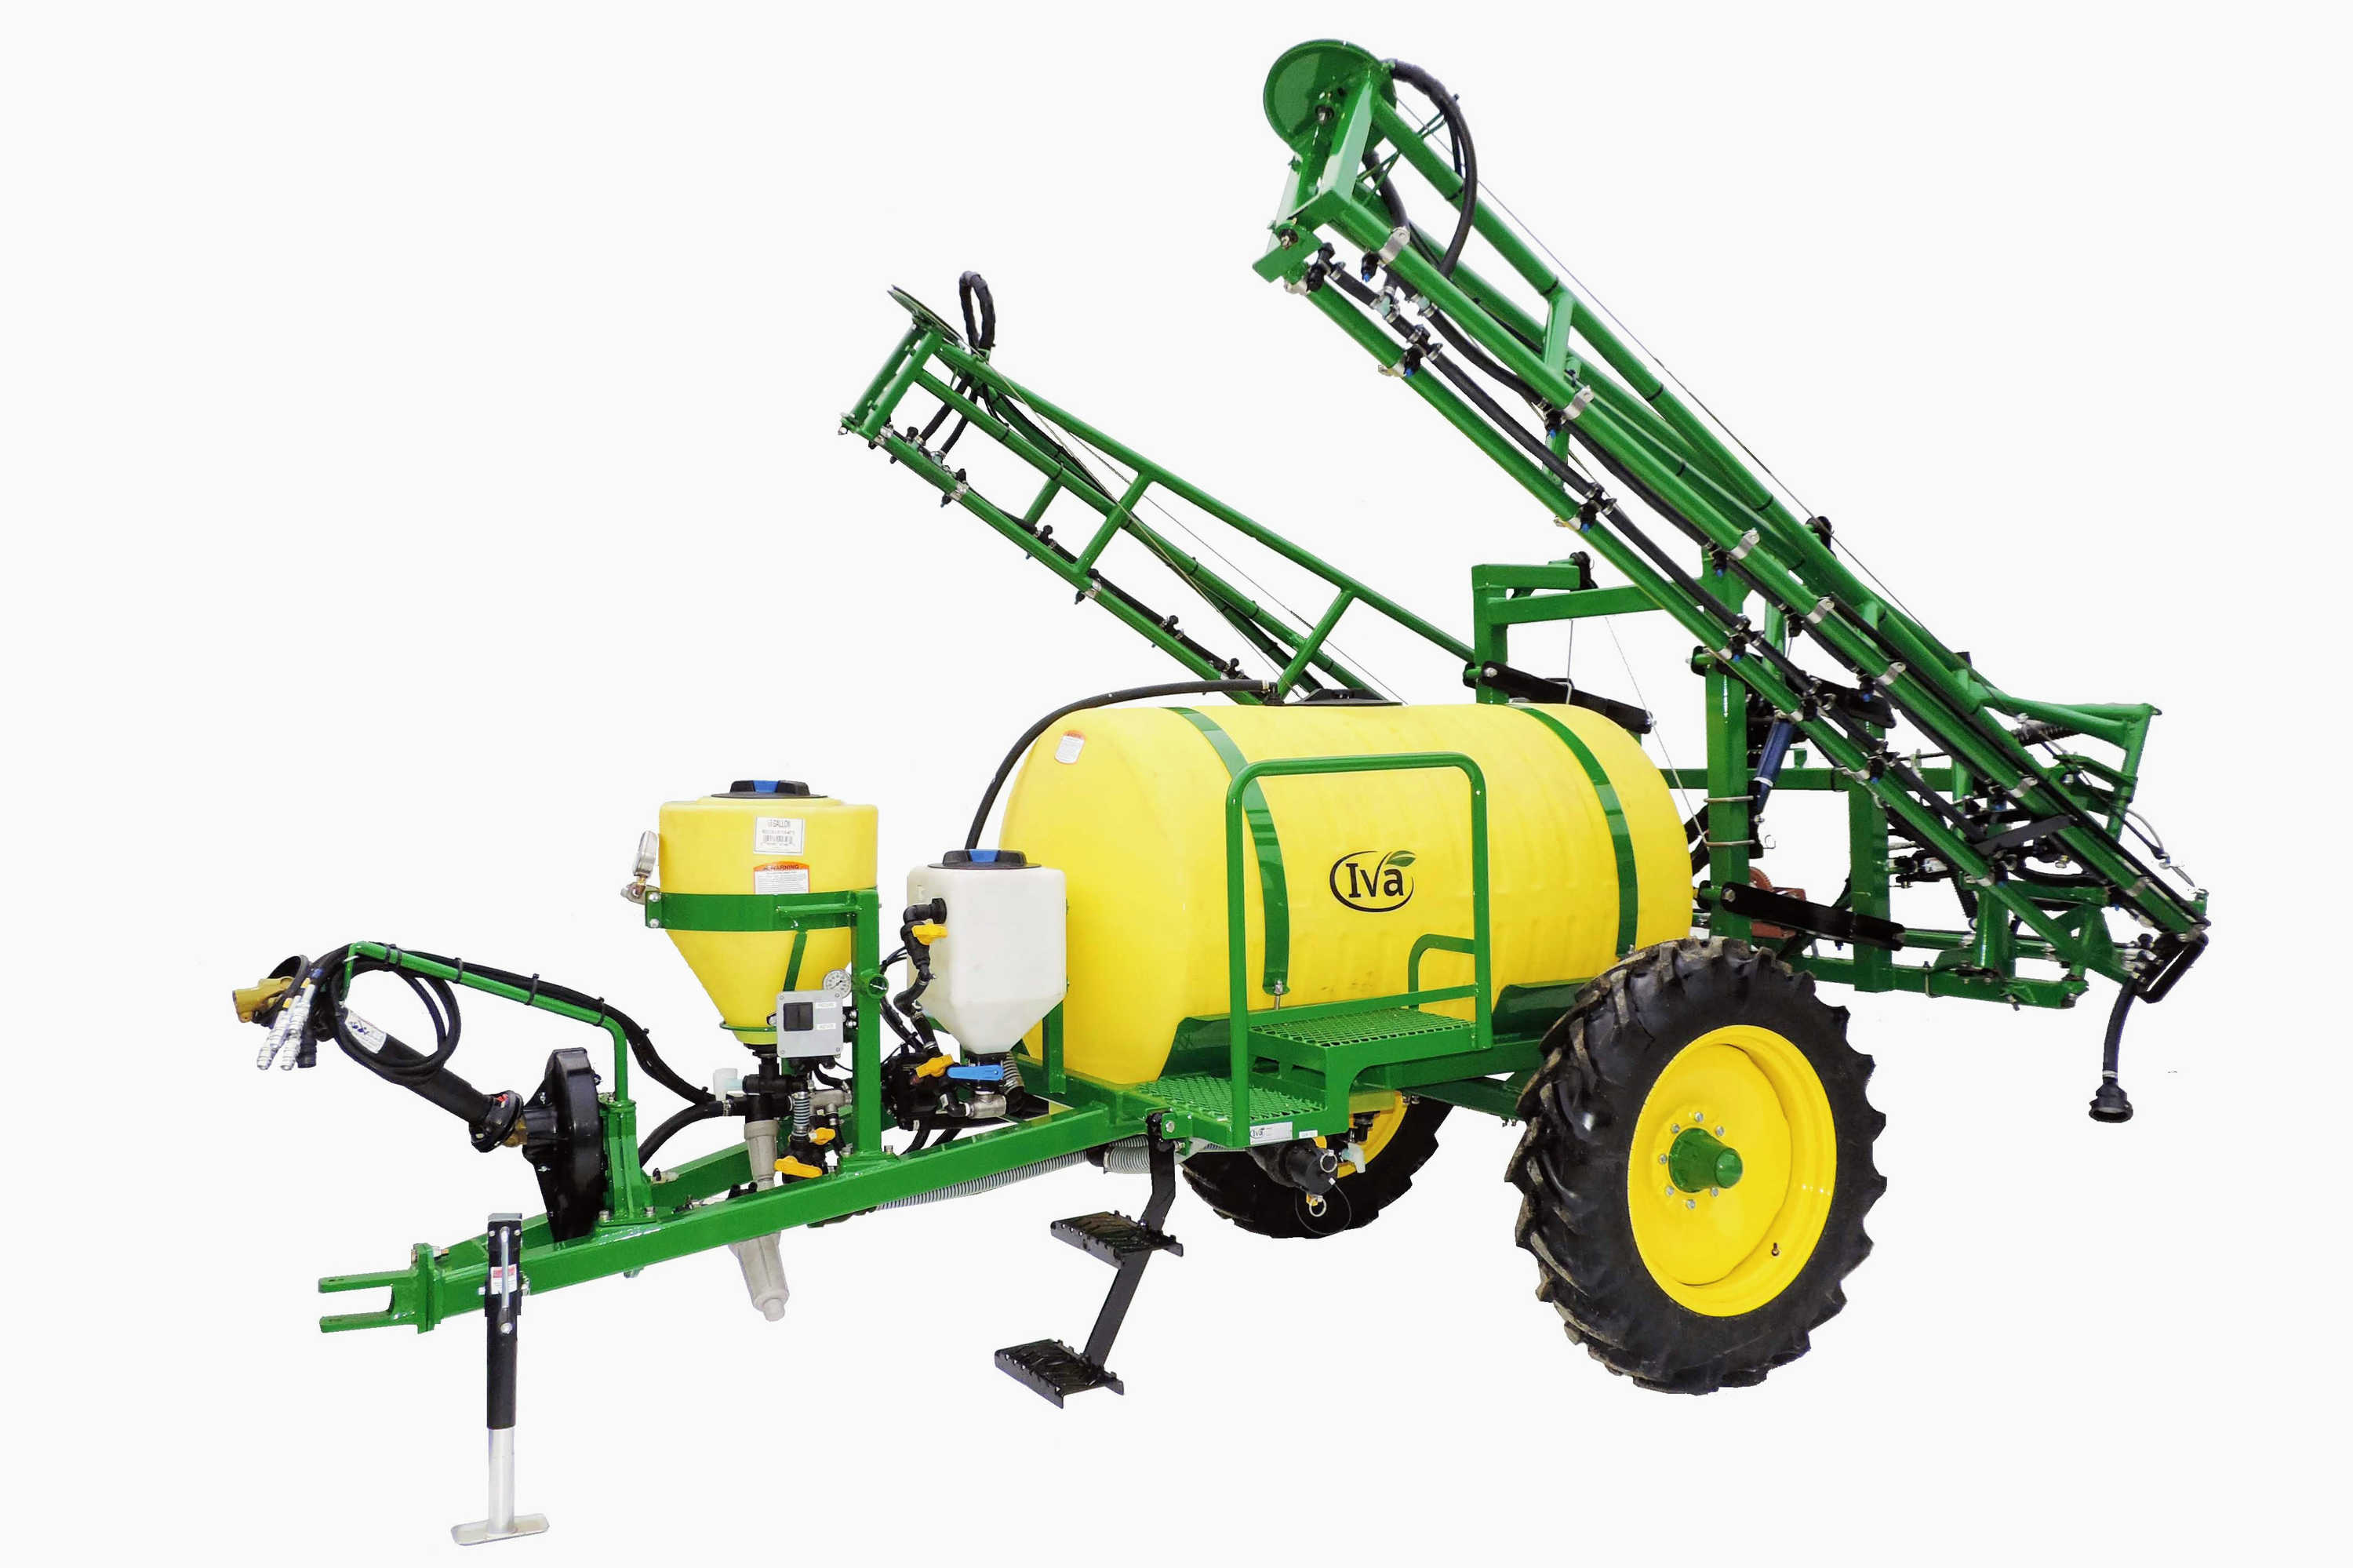 300-gallon Trailer Field Sprayer with 45' Hydraulic-fold Booms